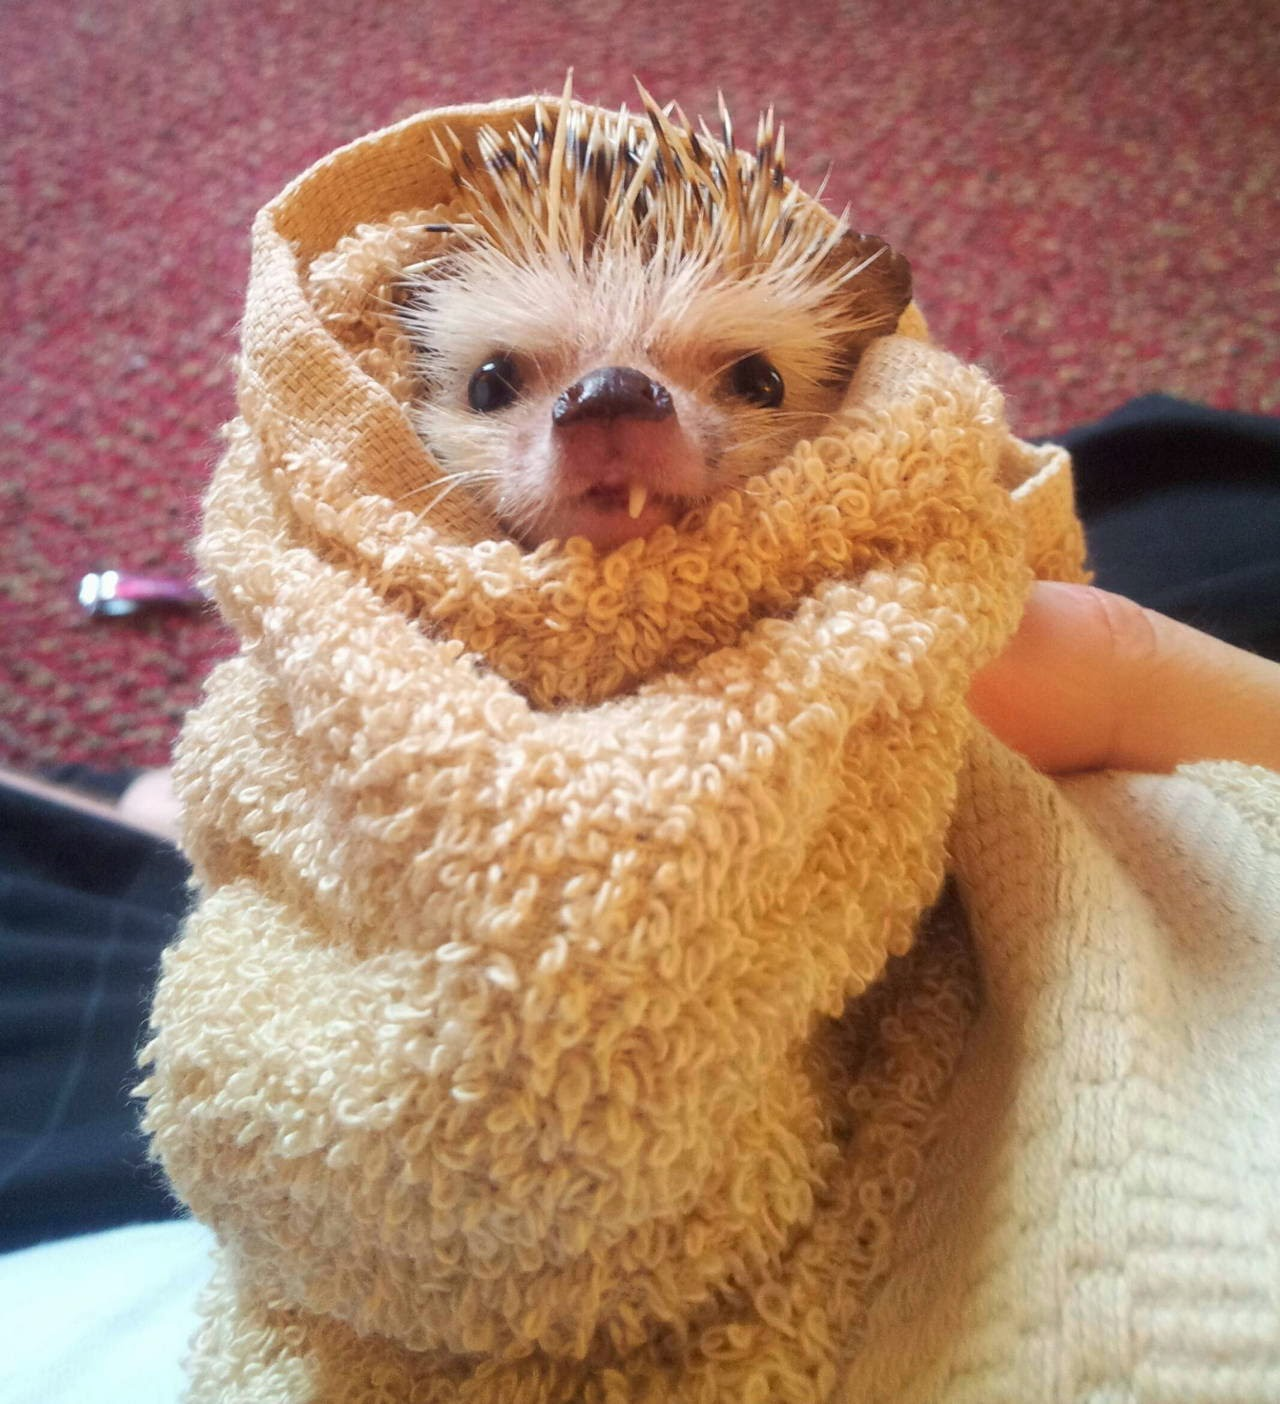 Funny animals of the week - 9 May 2014 (40 pics), cute animals, animal photos, hedgehog with one tooth